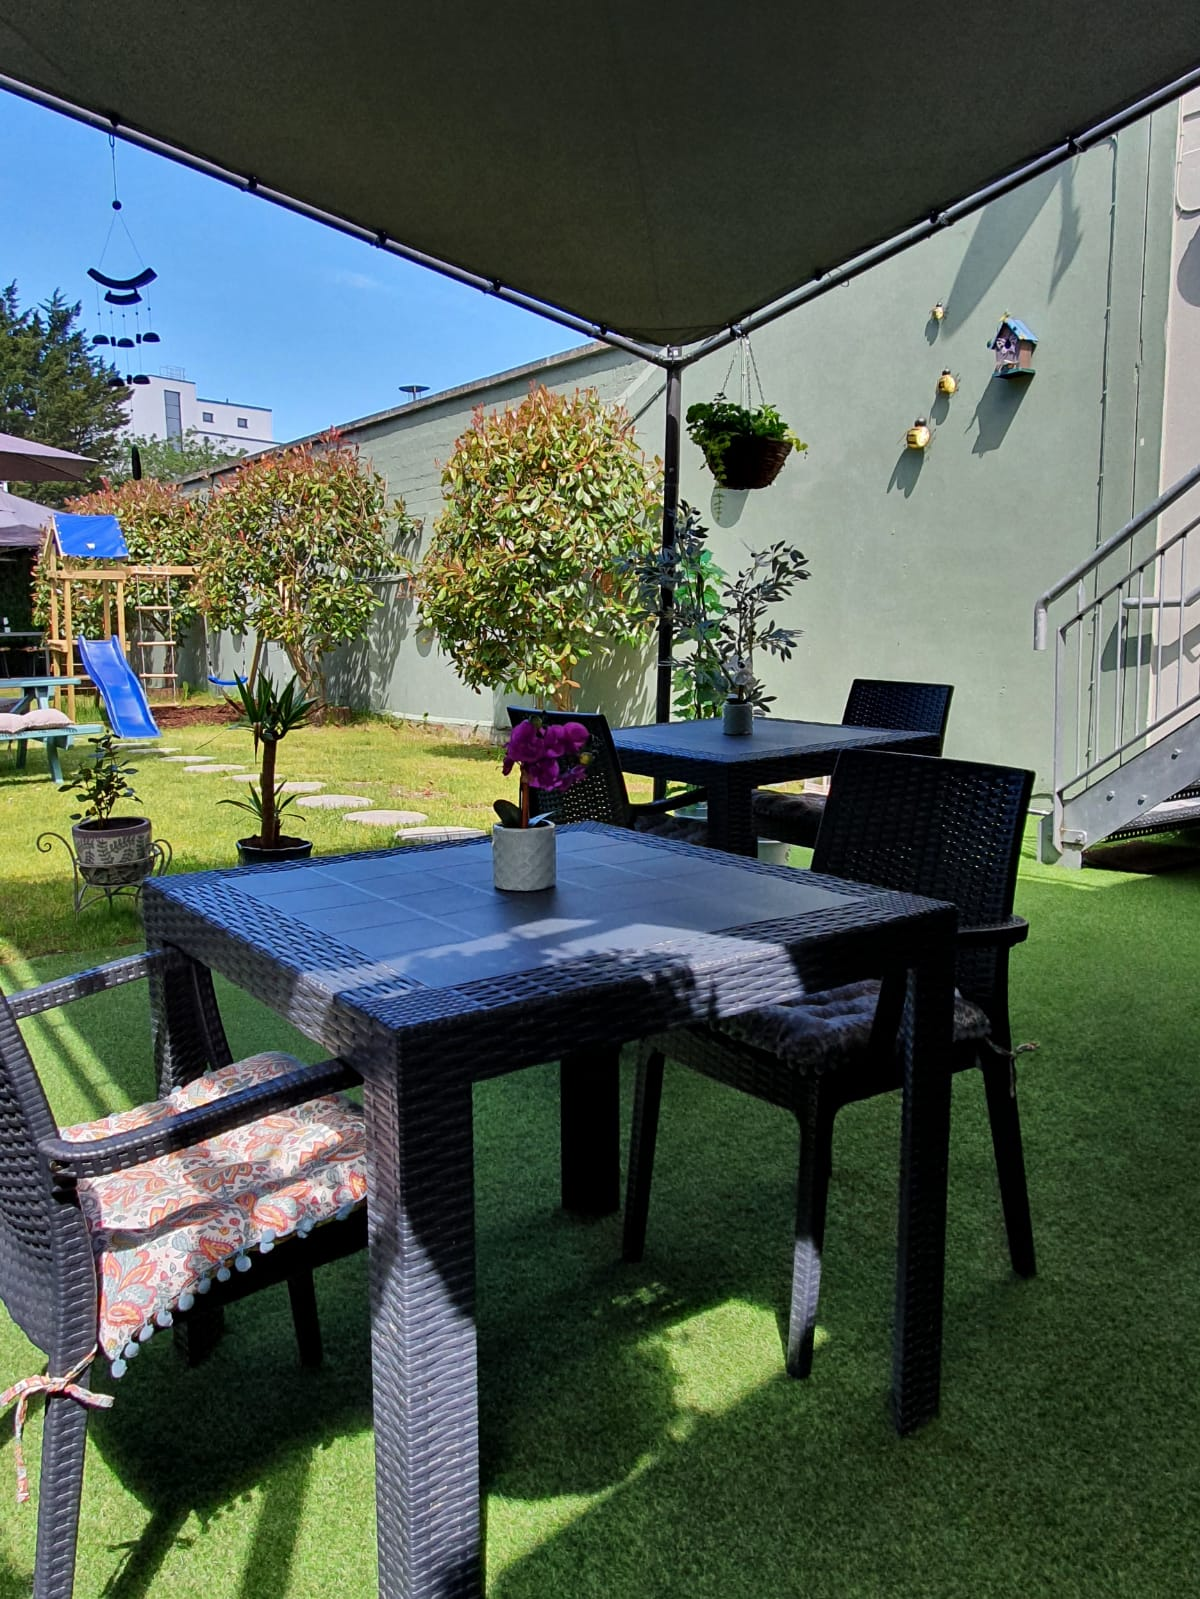 Private Outdoor Dinning - Outdoor Dinning - Wine House Restaurant